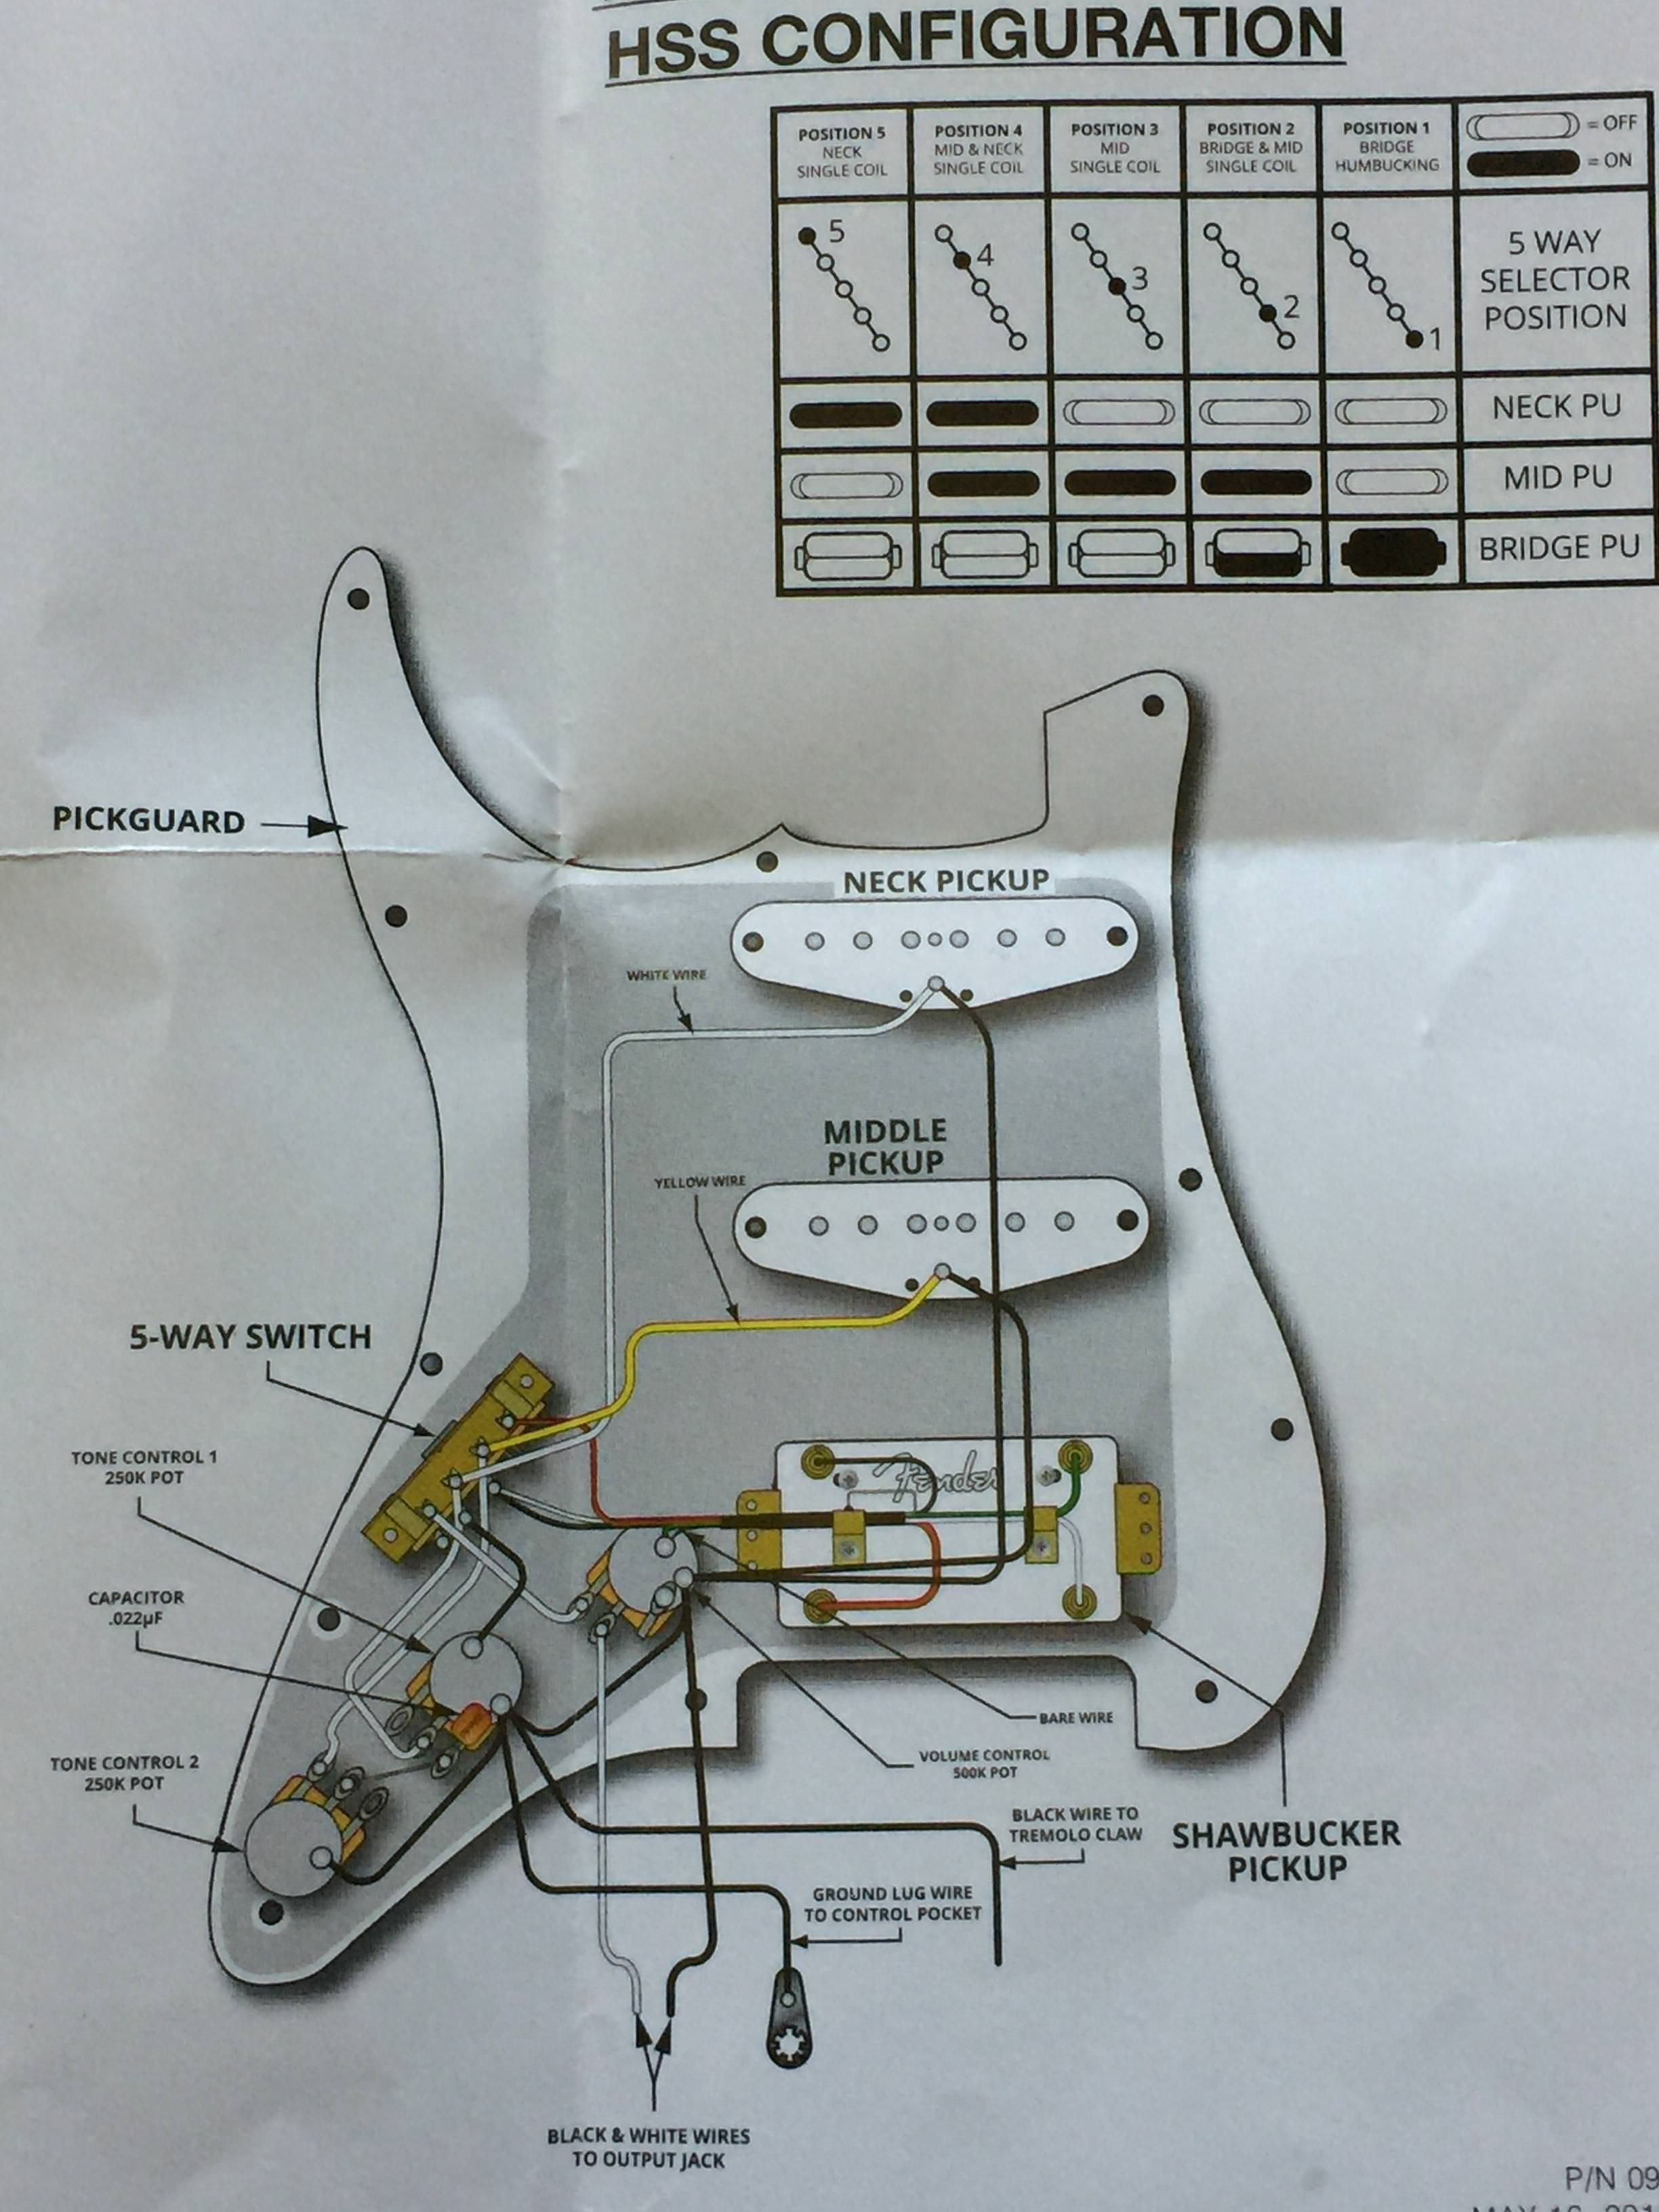 Fender S-1 Wiring Diagrams Wiring Diagrams for Guitars Of Fender S-1 Wiring Diagrams